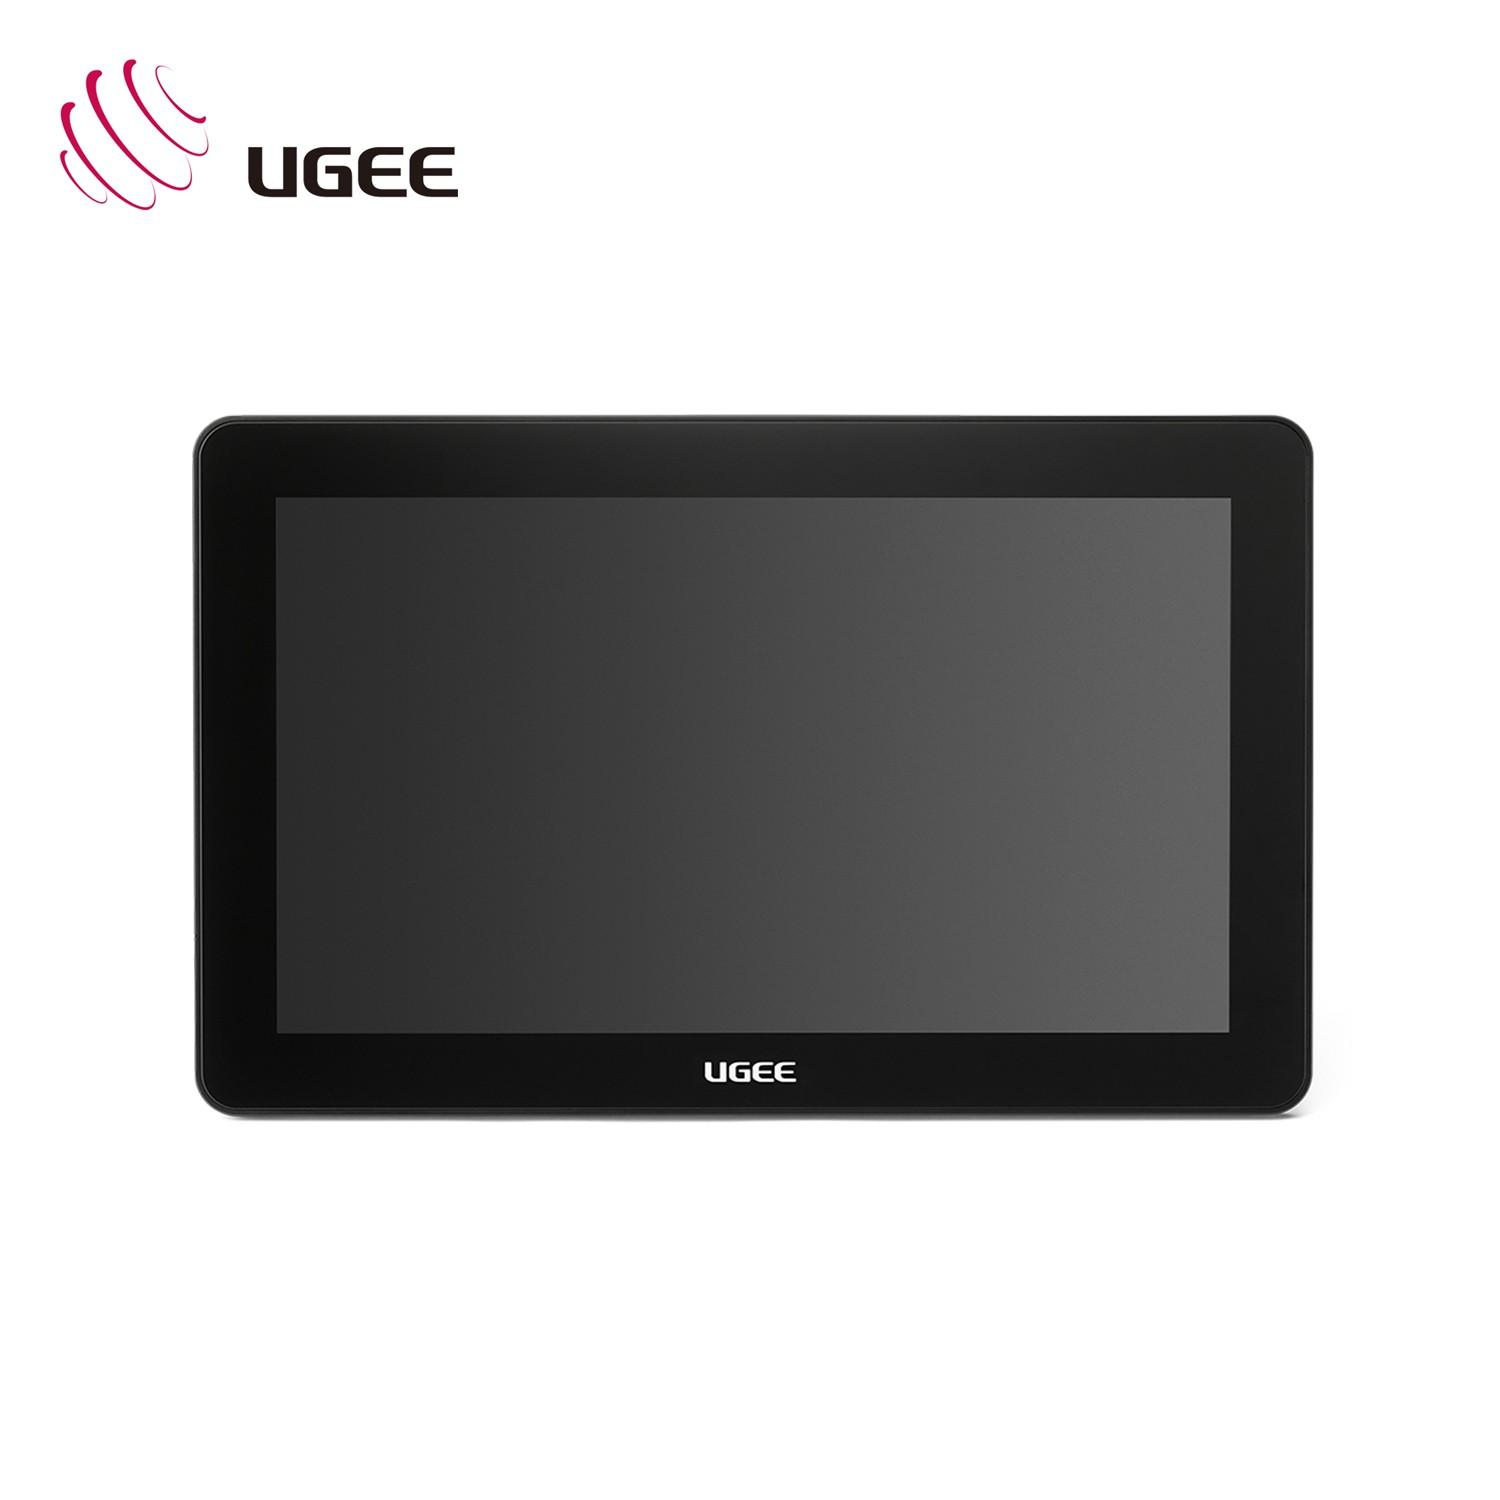 Ugee-Quality Ugee Brand Design Signature Pad | Buy Handwriting